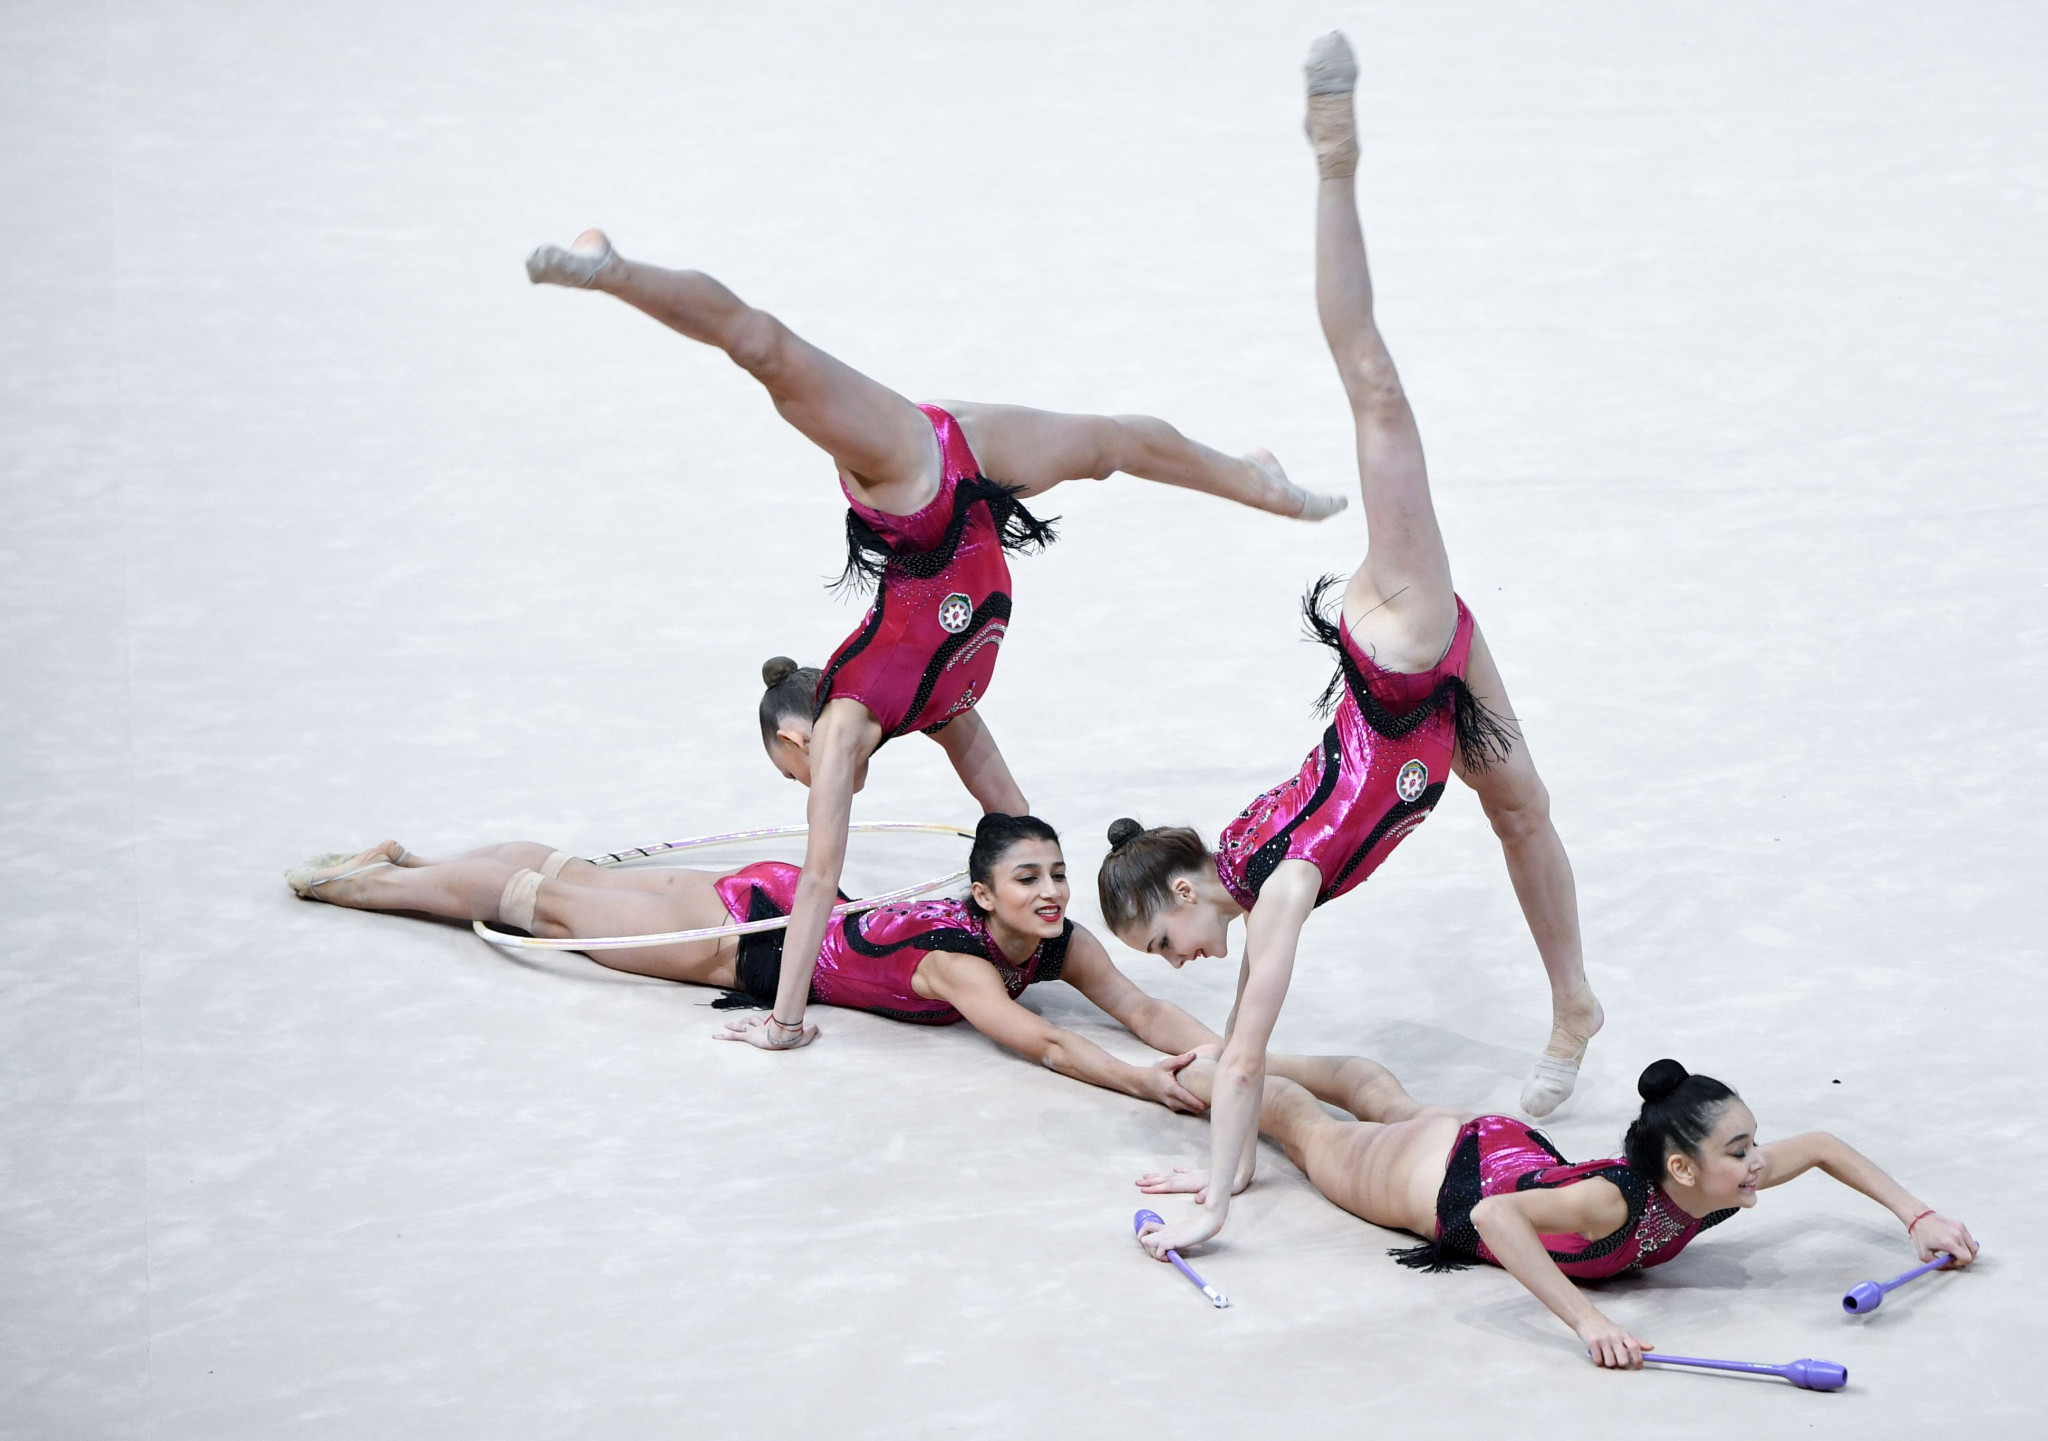 Budapest last staged the European Rhythmic Gymnastics Championships in 2017 ©Getty Images